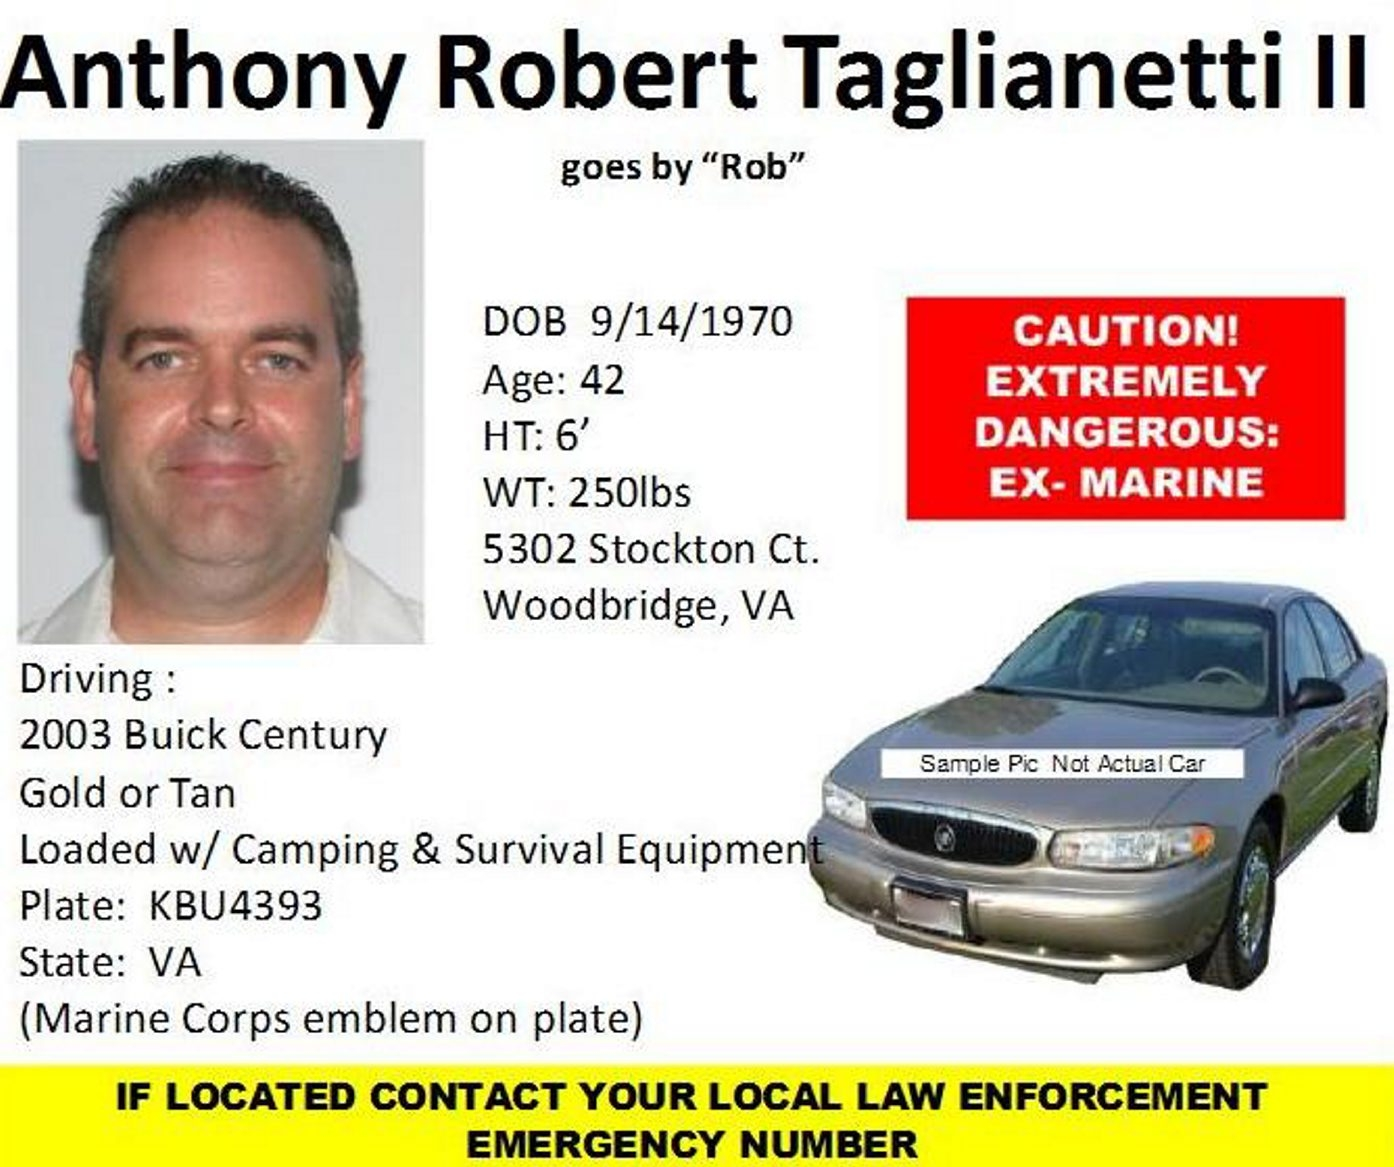 Wanted poster for the suspect, Anthony Robert Taglianetti II, 42, of Woodbridge, Va.